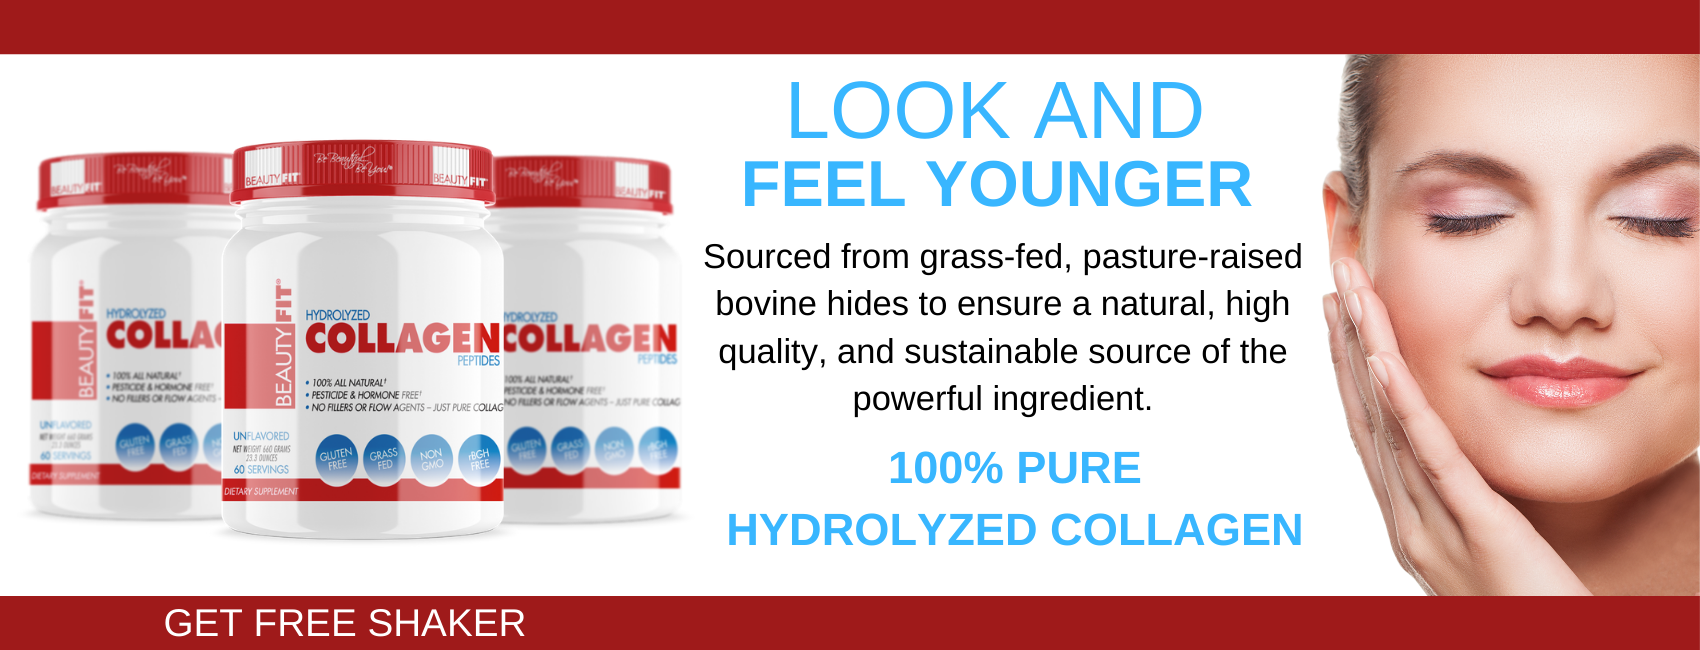 BeautyFit® Collagen for women is 100% all-natural Brazilian pasture-raised bovine hydrolyzed collagen powder. Collagen powder for women work in the following way: